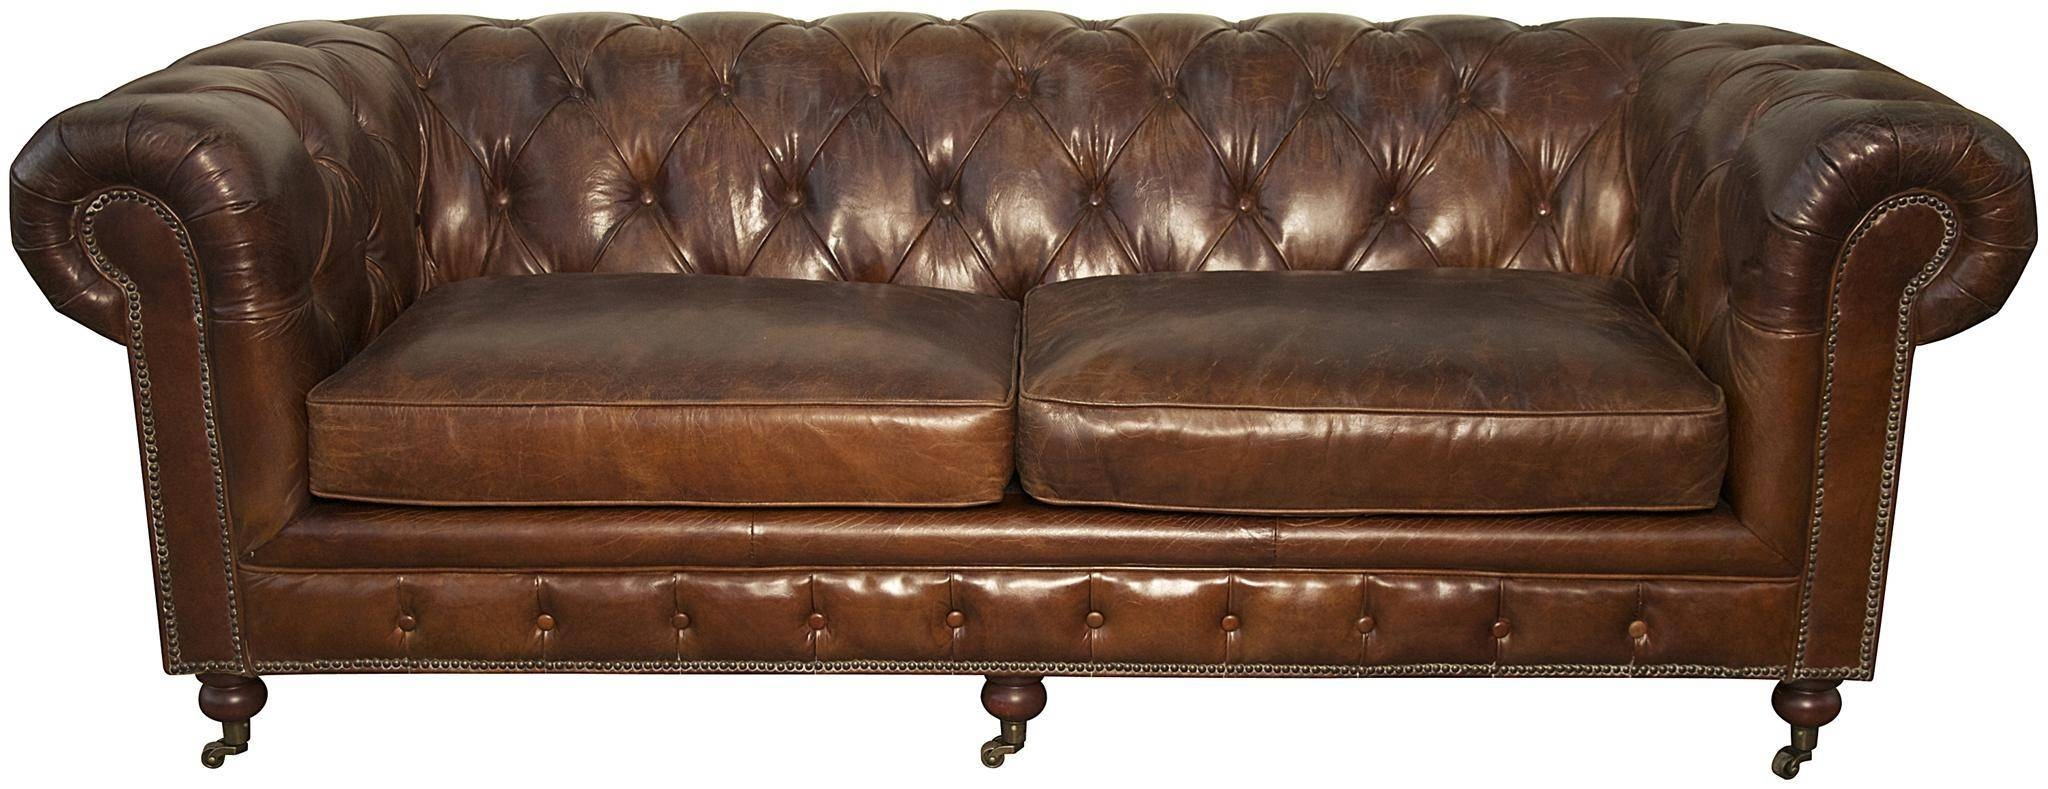 20 Top Brown Tufted Sofas | Sofa Ideas with Brown Leather Tufted Sofas (Image 2 of 15)